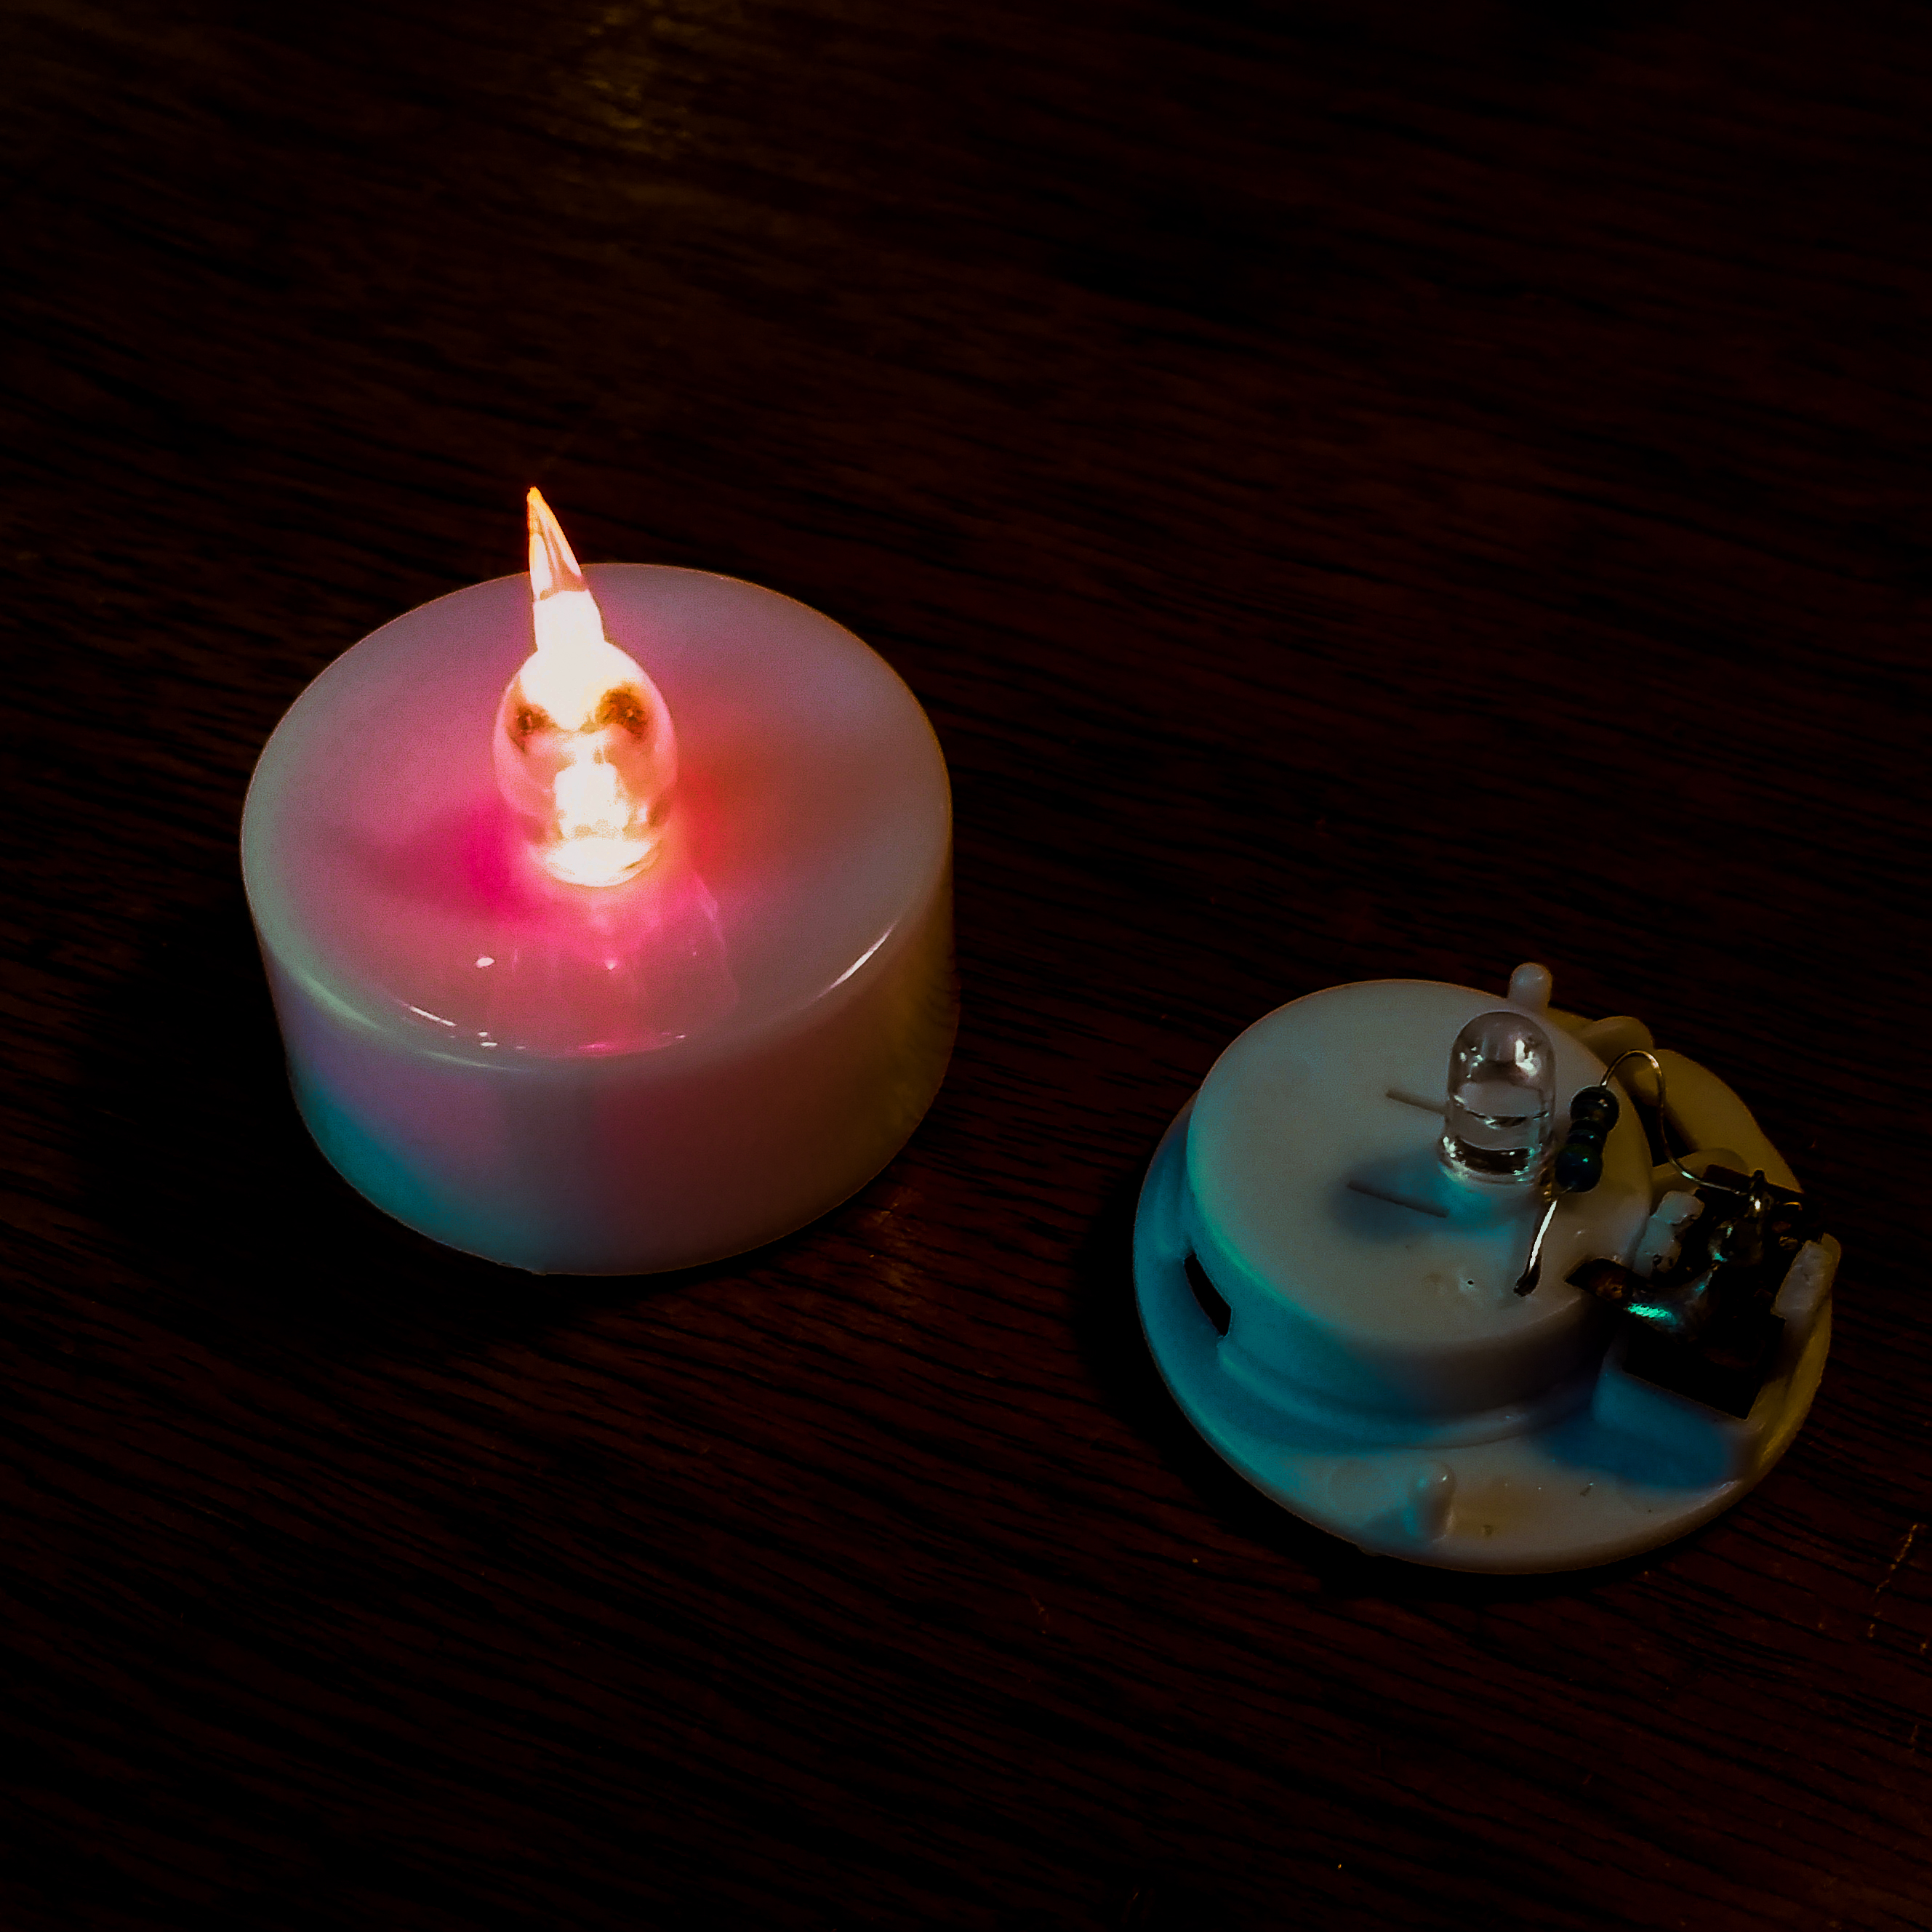 Picture of Astronomer's Tea Lamp - Introduction